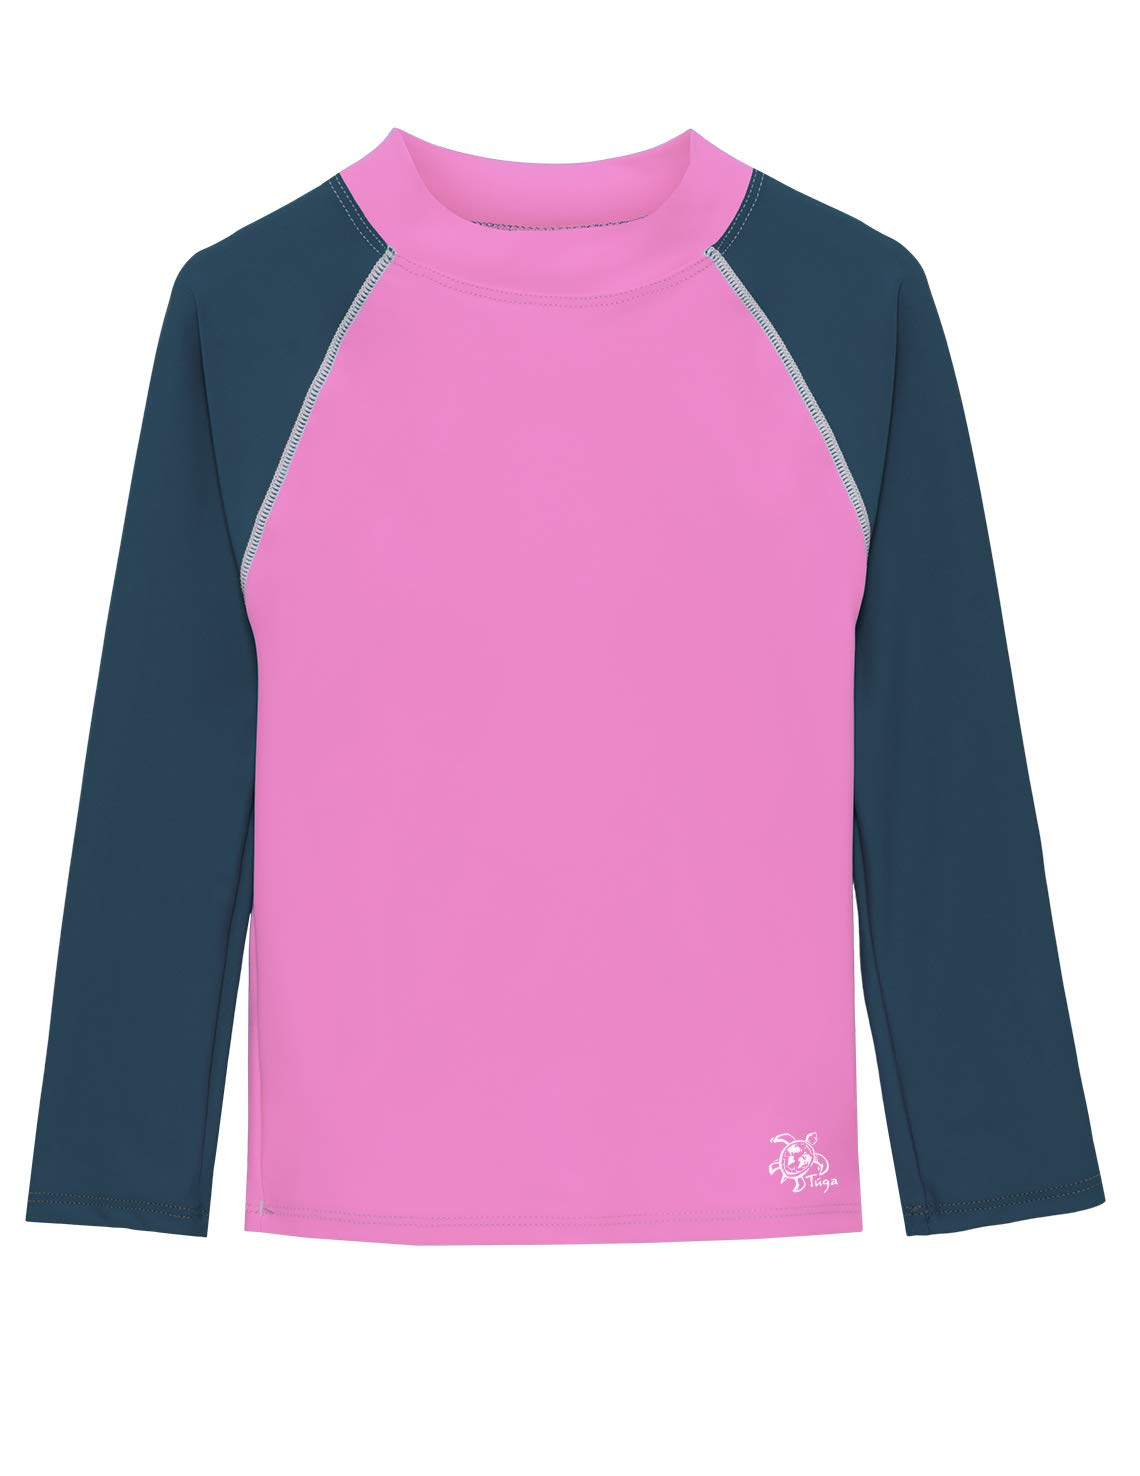 Tuga Basics Girls L/S Rash Guard (UPF 50+), Blush/Steely Blue, 8/10 yrs by Tuga Sunwear